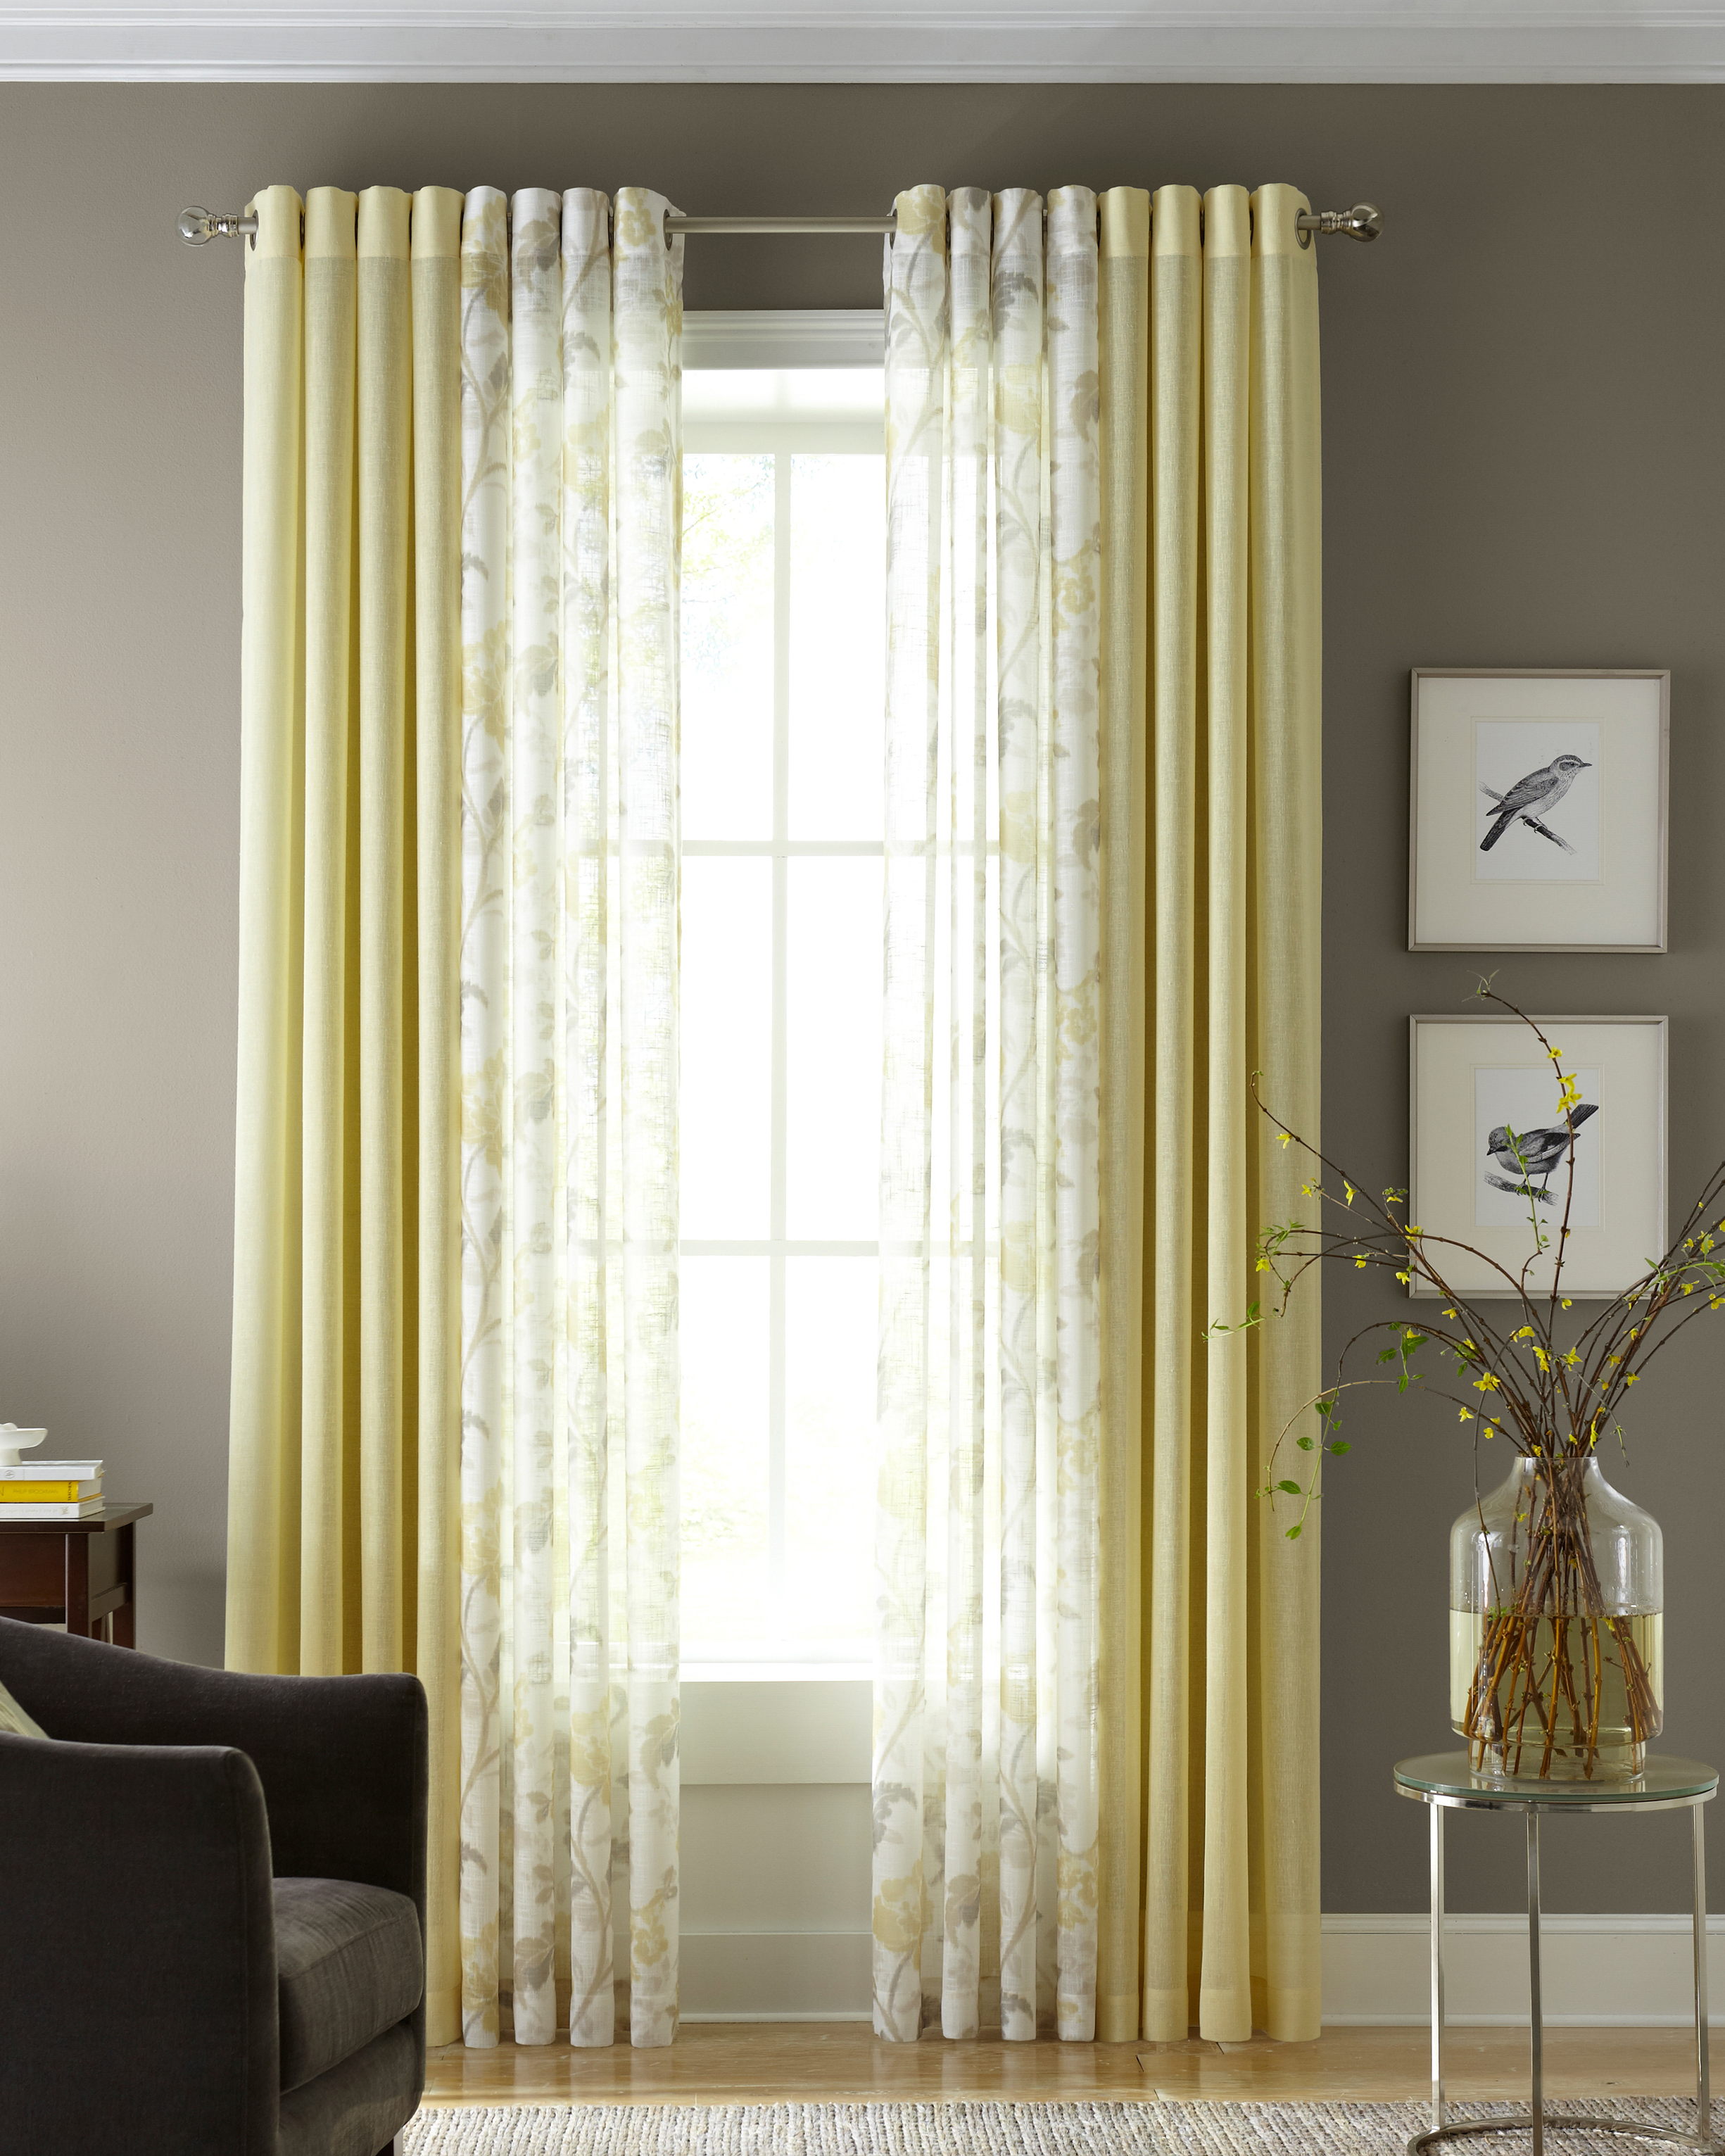 jcp-windows-livingroom-mrkt-0214.jpg